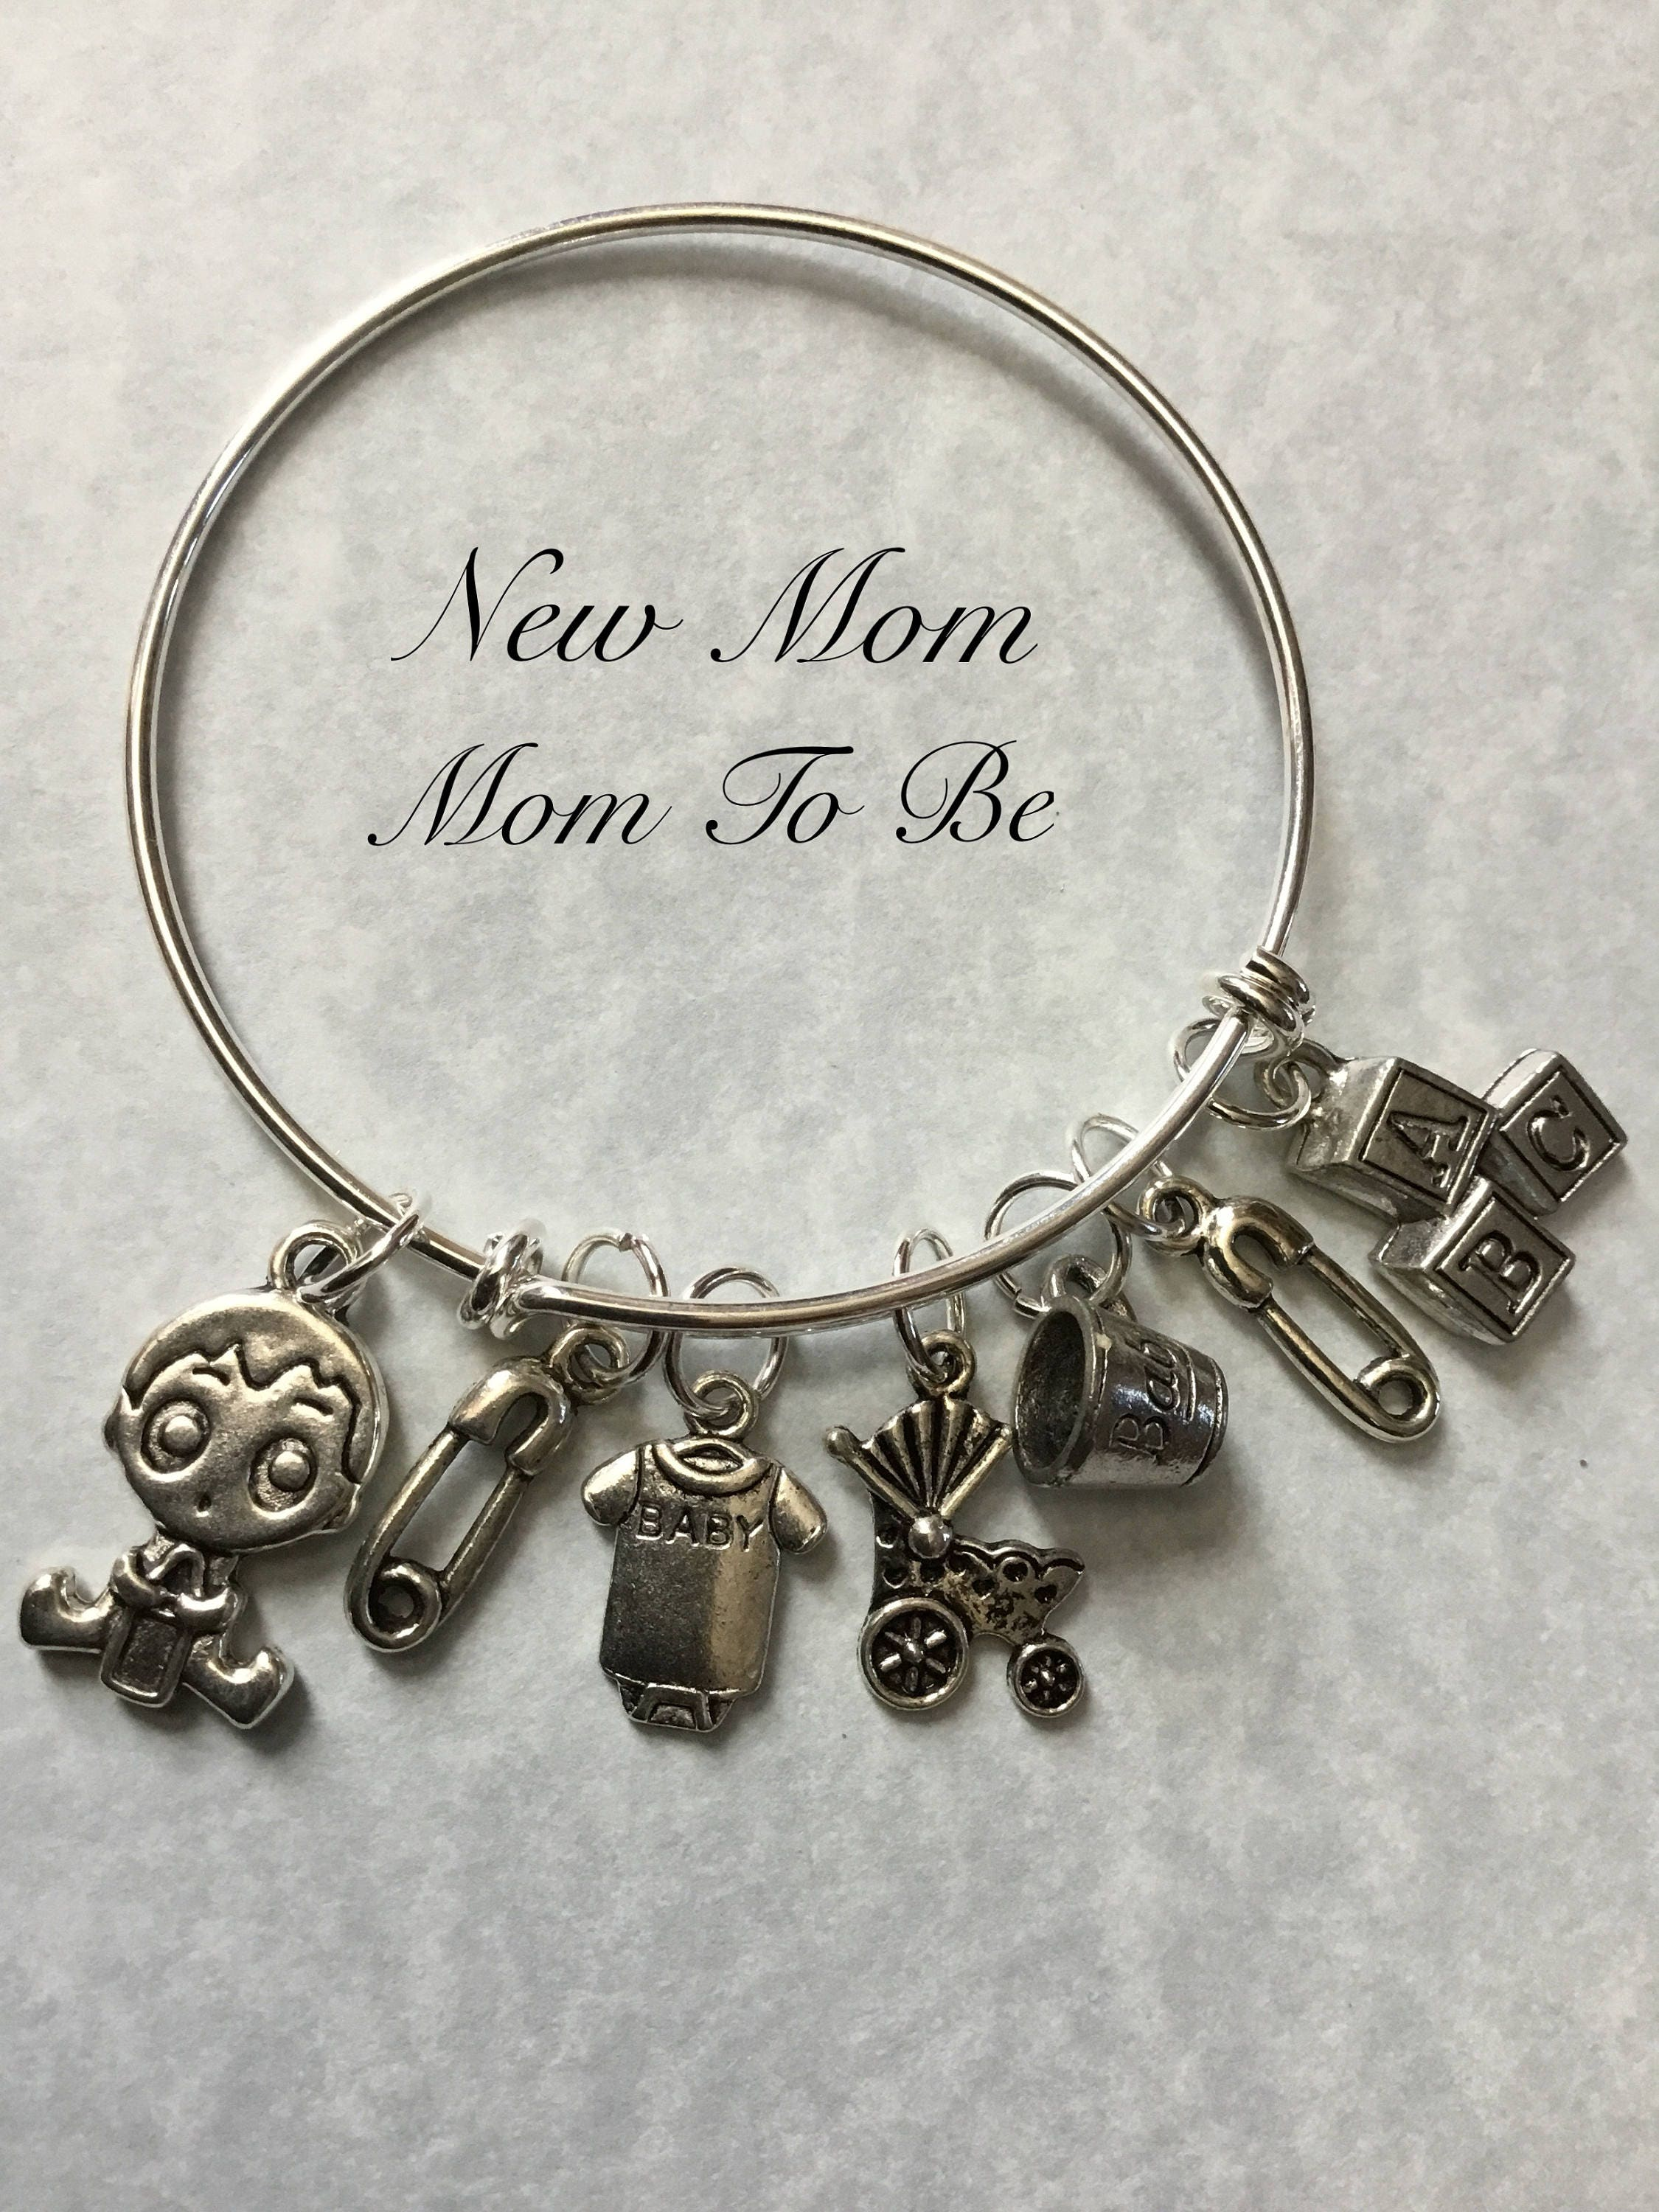 bracelets ideas daughter bangles birthdays blog bangle s inspiring day bracelet i best from and remember mother mothers gifts love for you cuff gift mom bracele